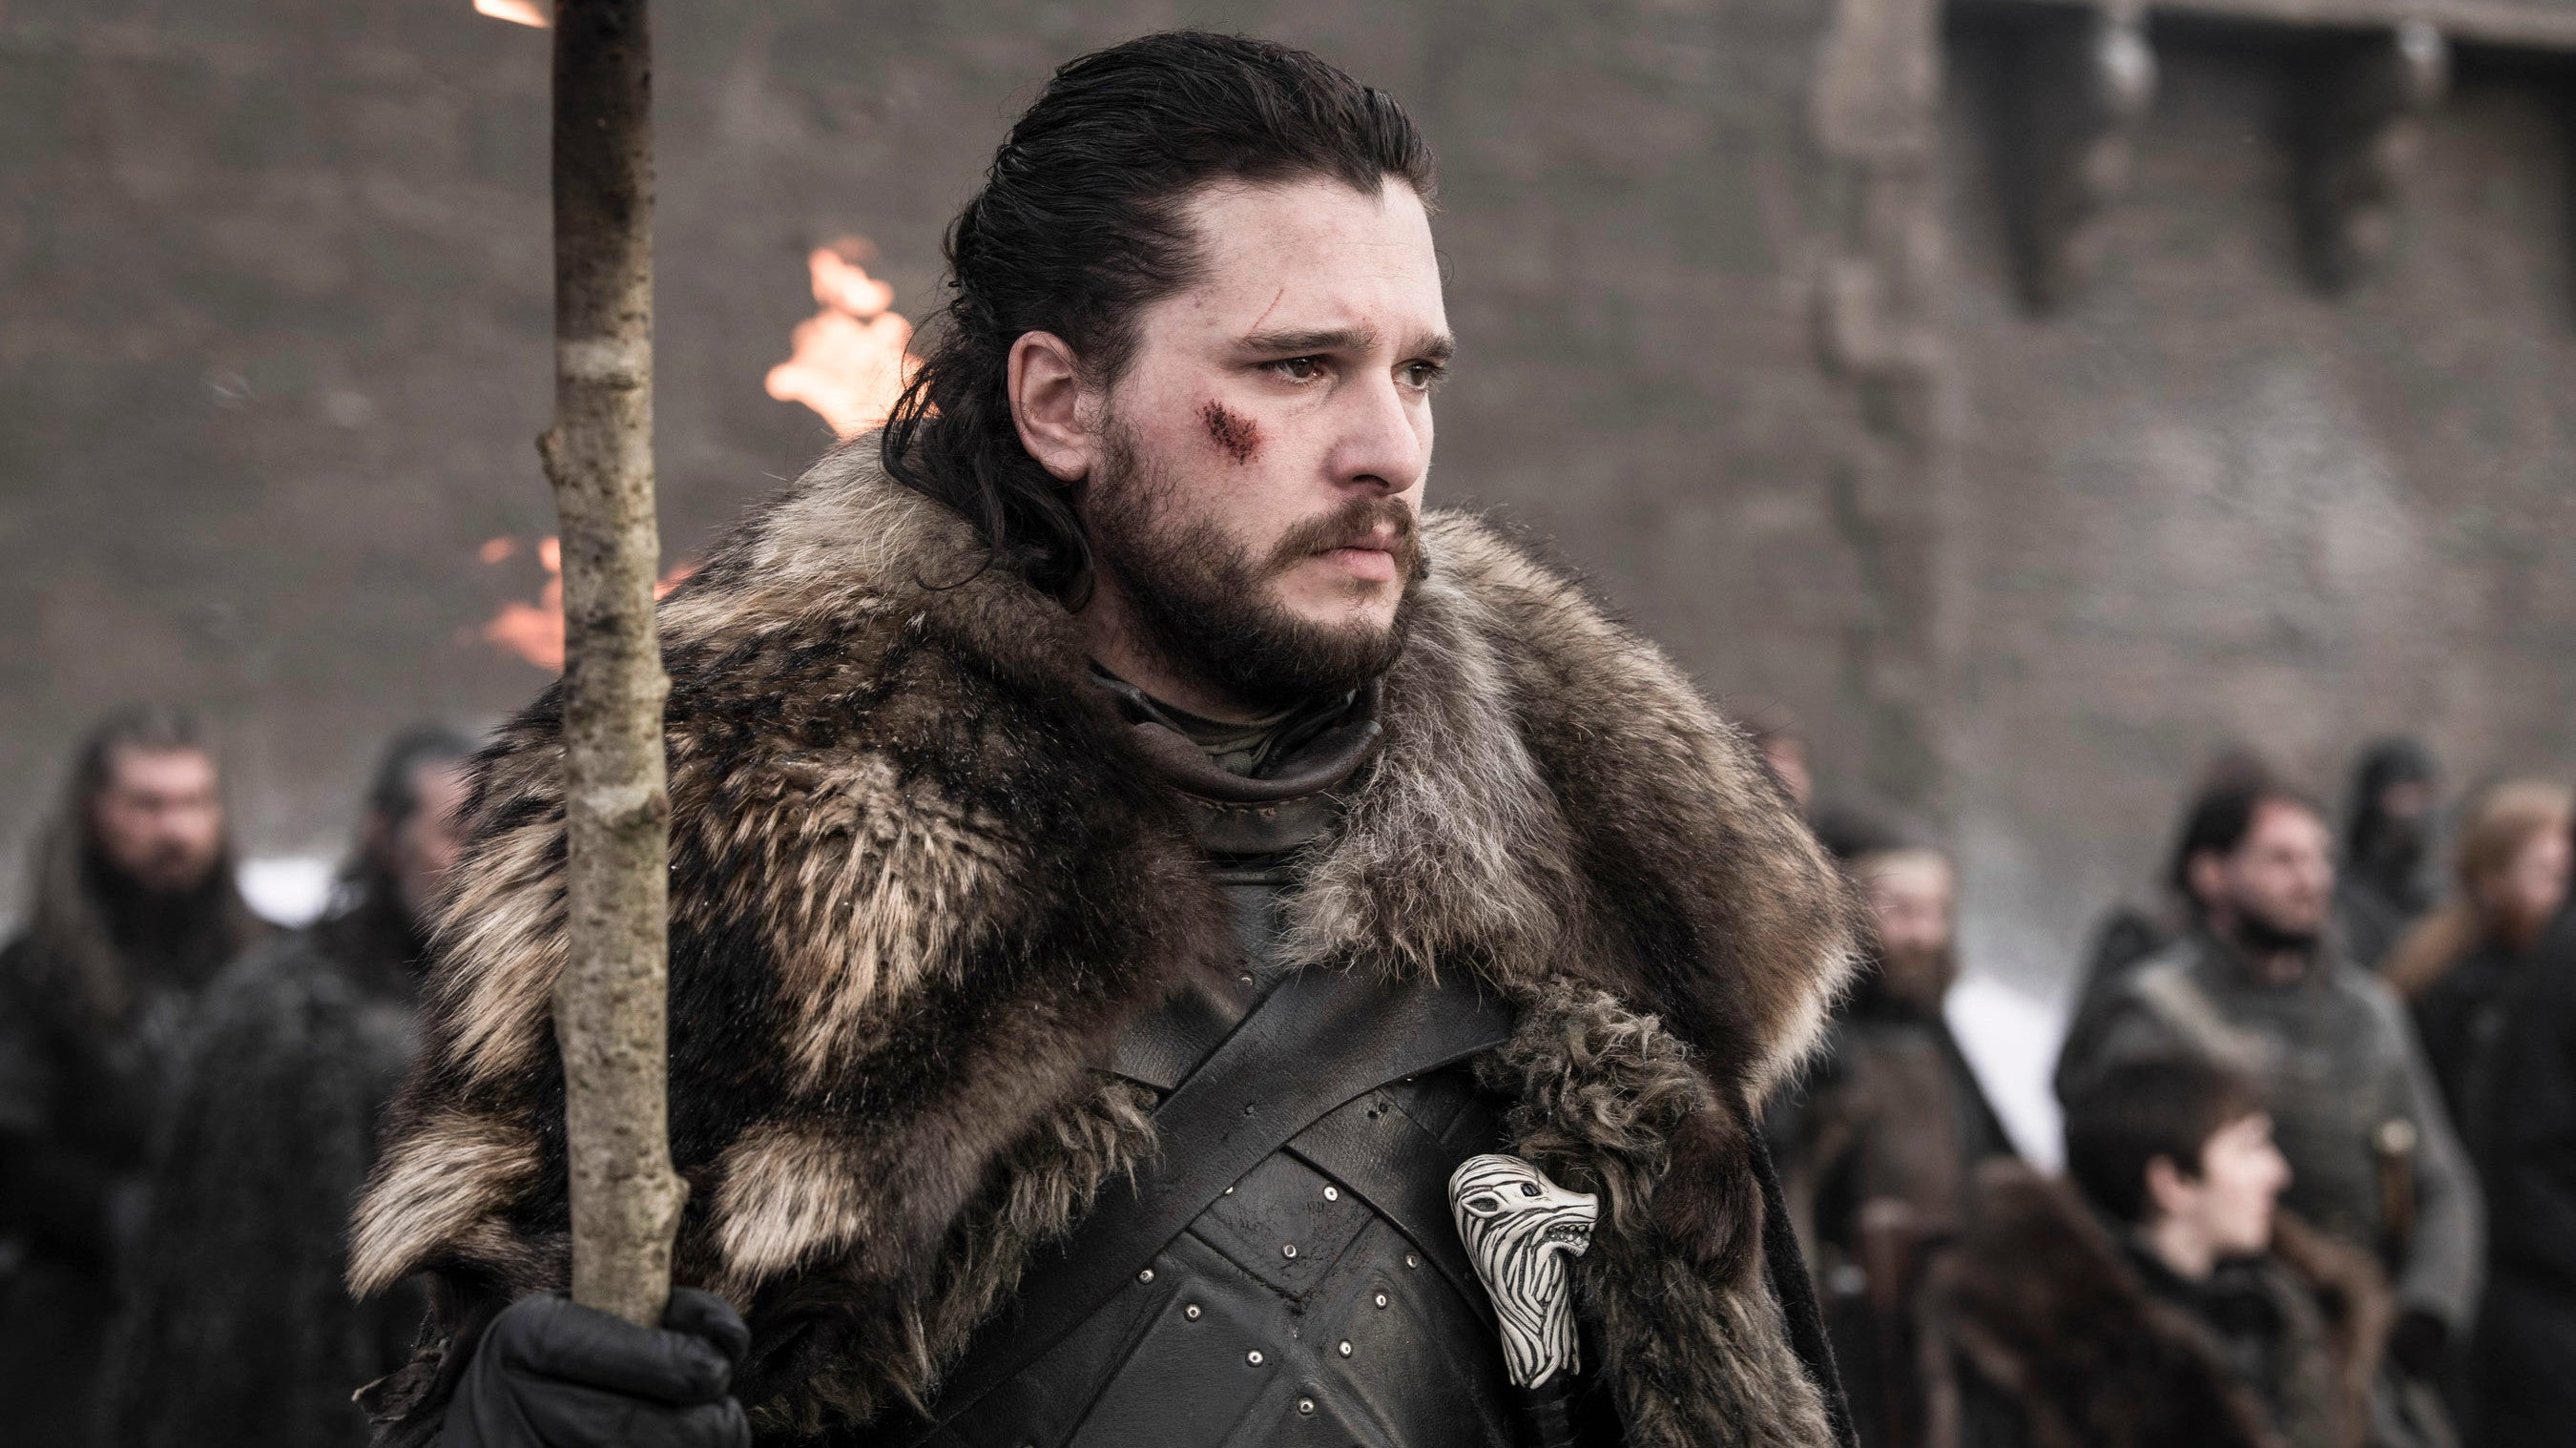 Looking At These Game Of Thrones Teaser Images, You'd Never Guess There Was Almost An Apocalypse